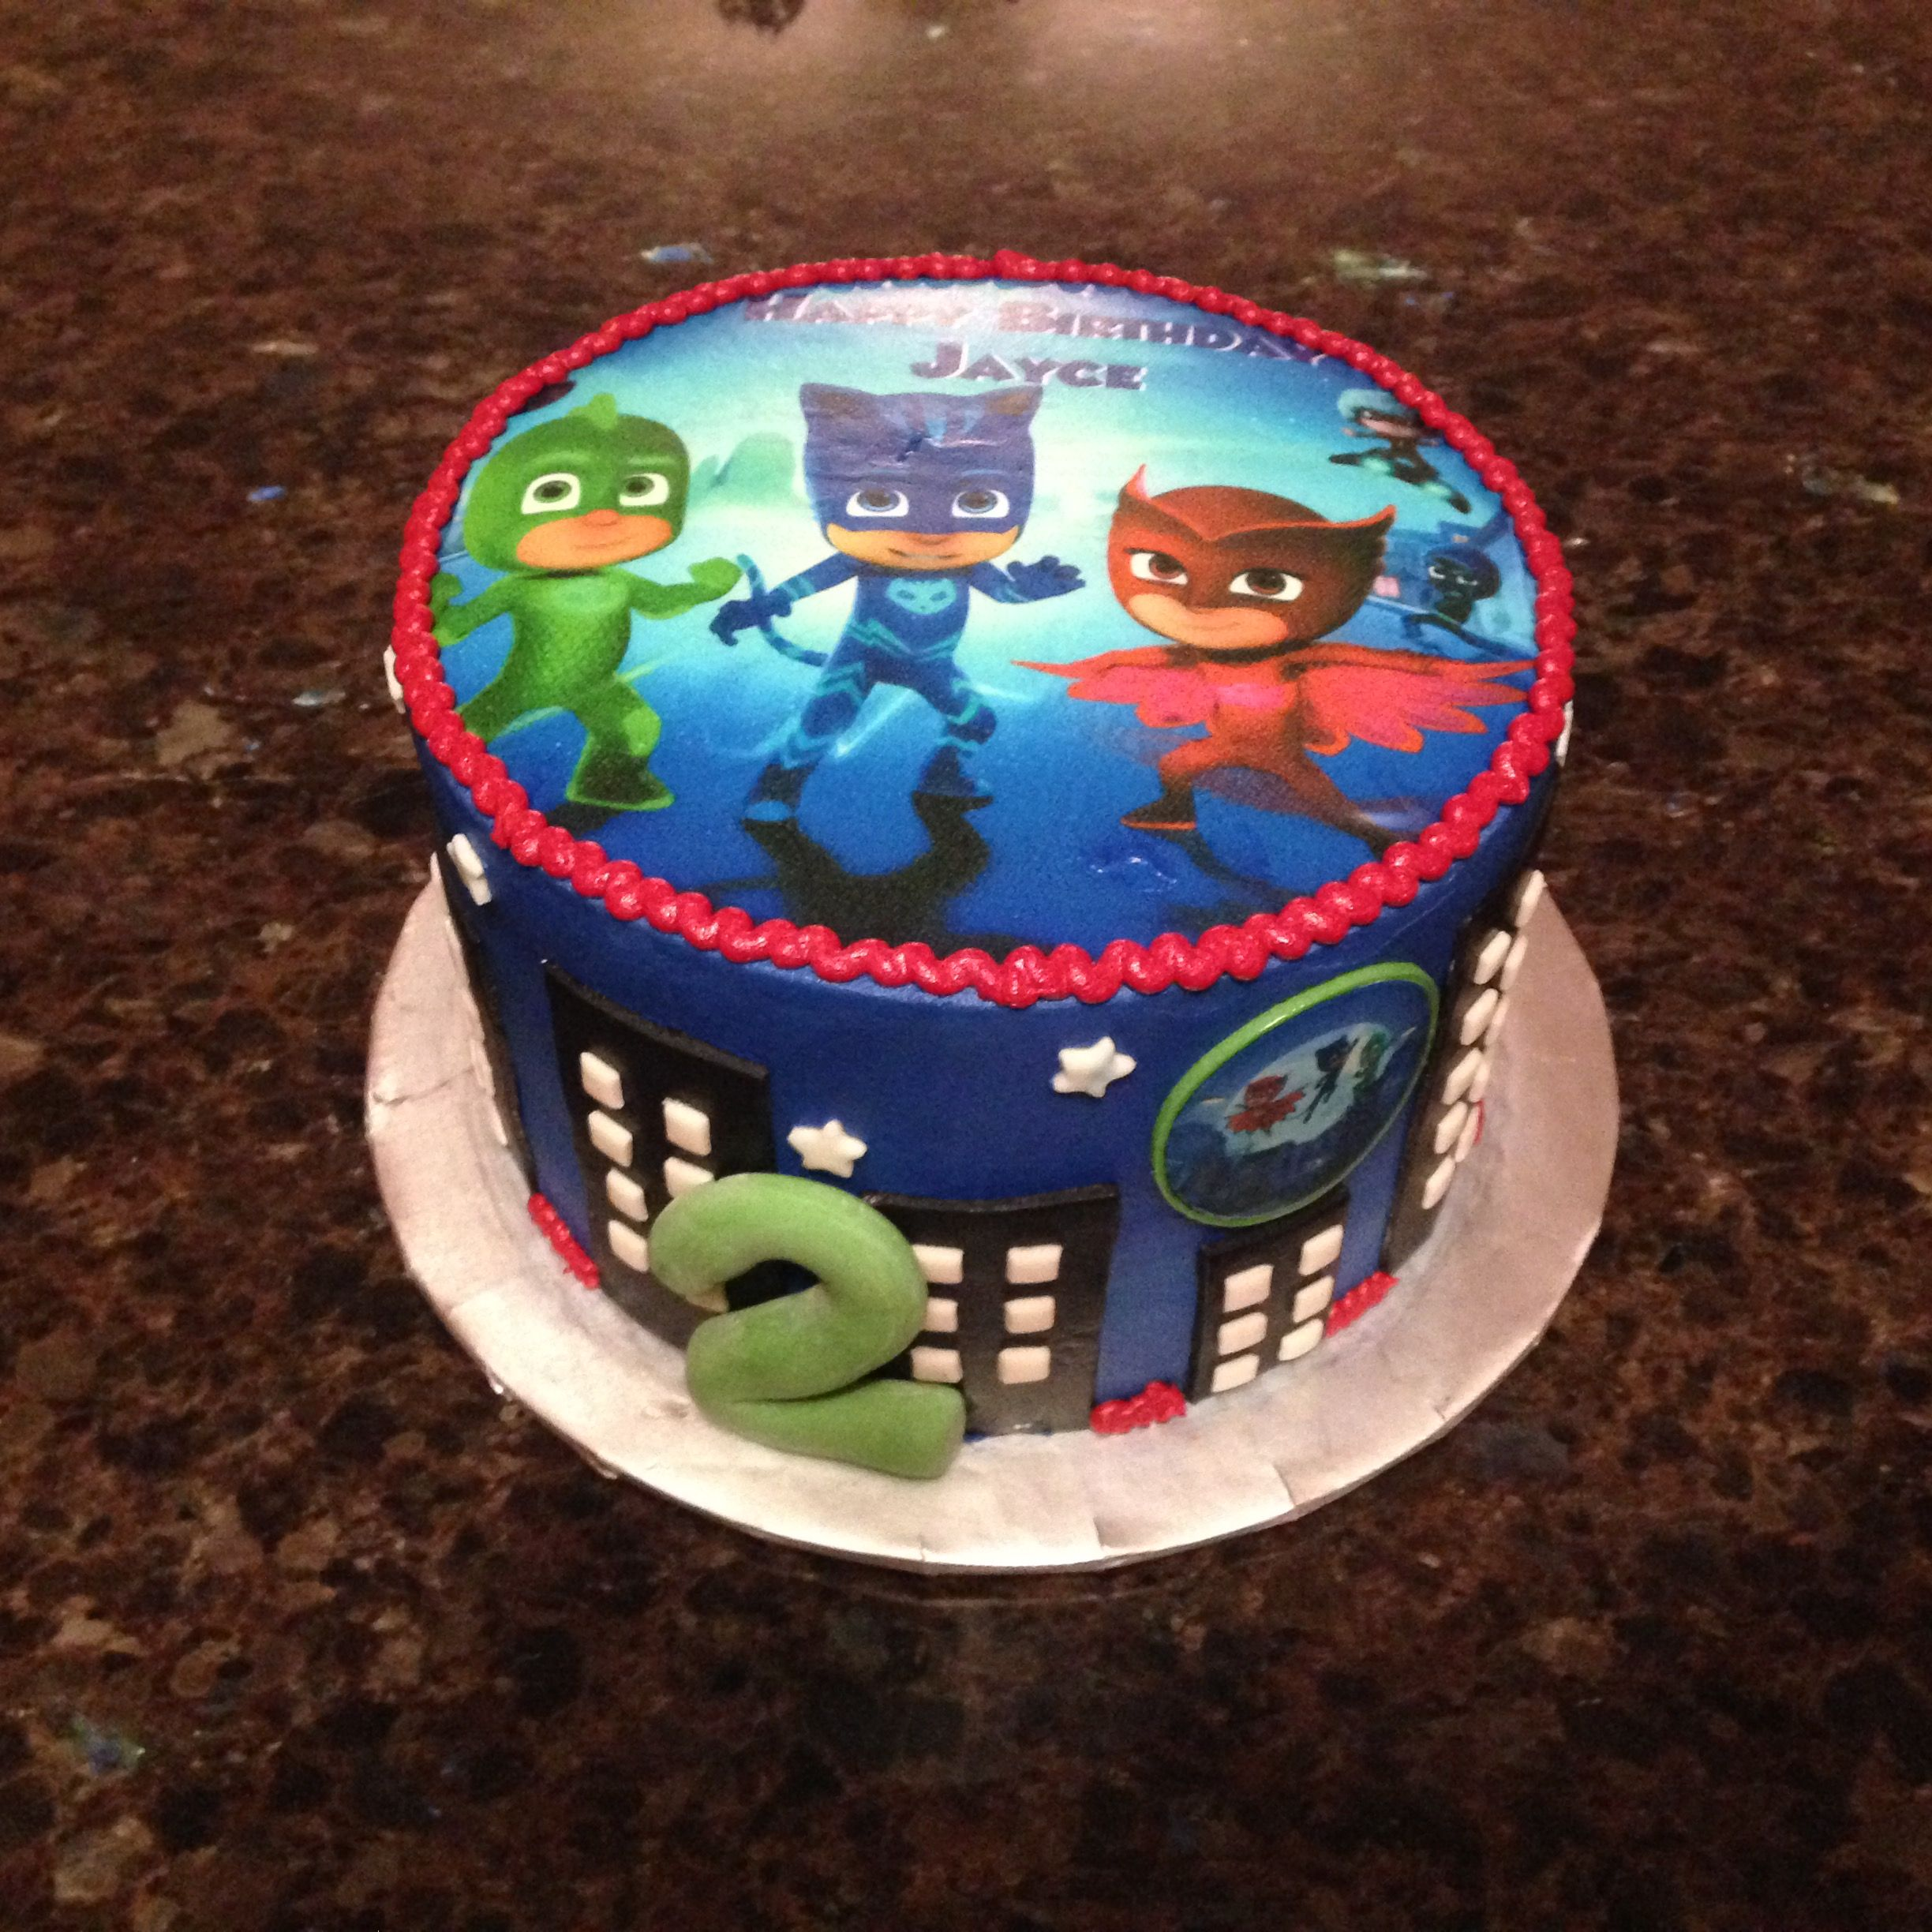 Sensational Pj Masks Cake Pj Masks Birthday Cake Pj Masks Birthday Party Funny Birthday Cards Online Alyptdamsfinfo